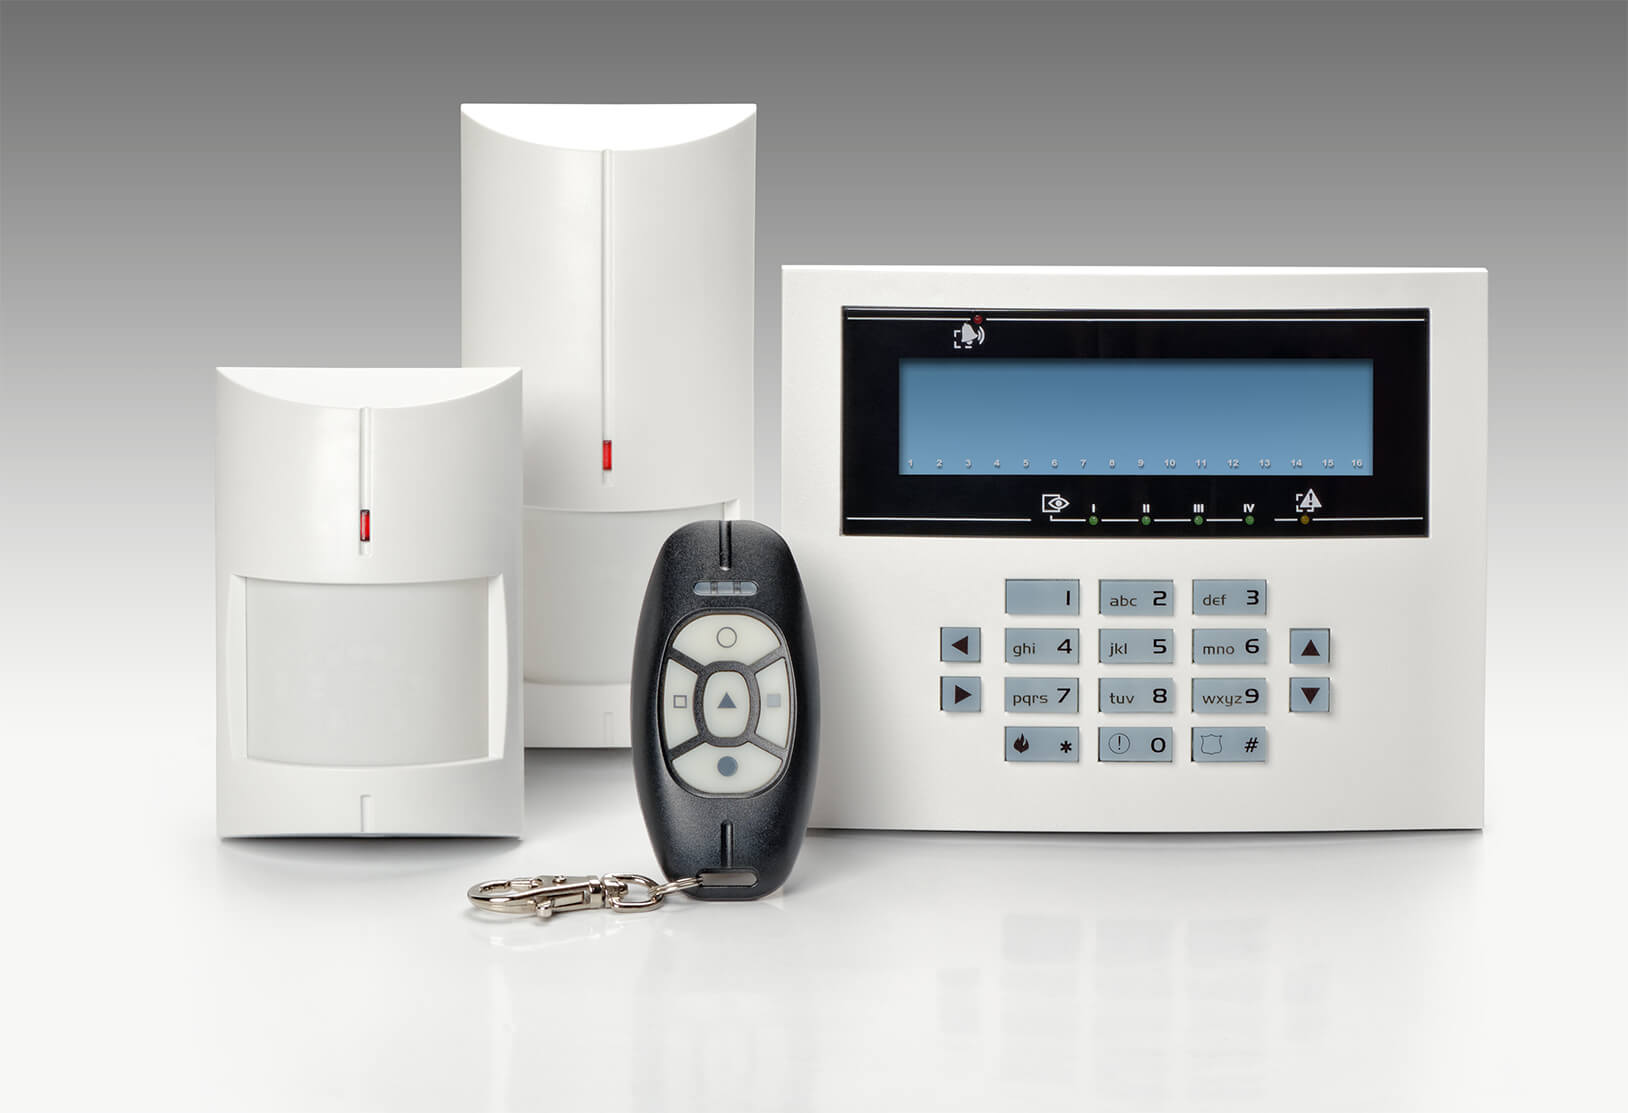 Commercial Burglar Alarms For Business in East Dulwich SE22  - Local East Dulwich SE22 burglar alarm company.Call 02078872244 - Dedicated to Safety & Security. Companies, shops and homes ..